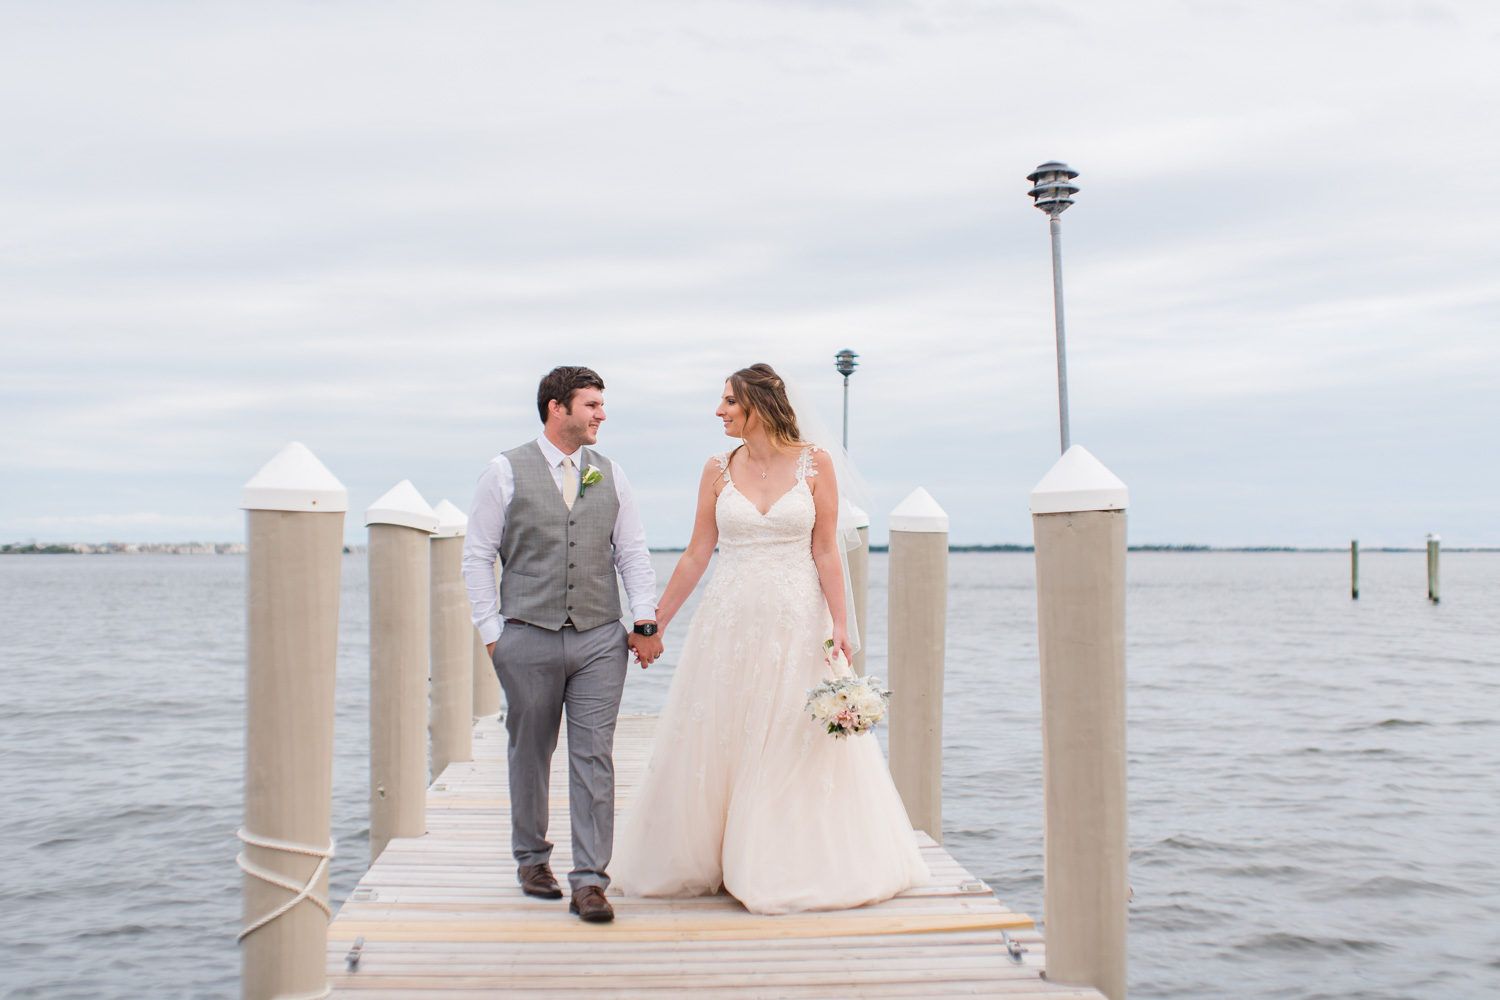 nj-wedding-photographer-martells-waters-edge-wedding-1-29.jpg